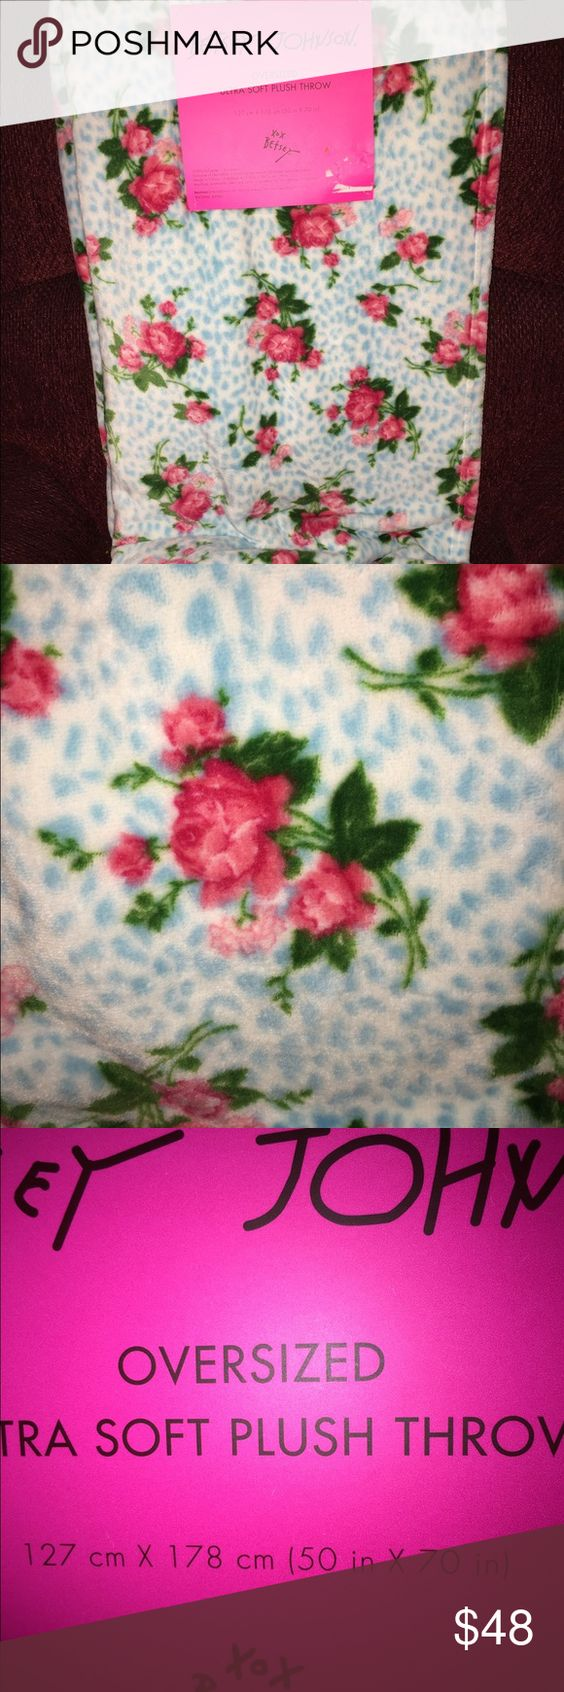 New Betsey Johnson ultra soft plush throw/blanket New Betsey Johnson throw/blanket. Super soft! White and light blue cheetah background with pink roses. Betsey Johnson Other